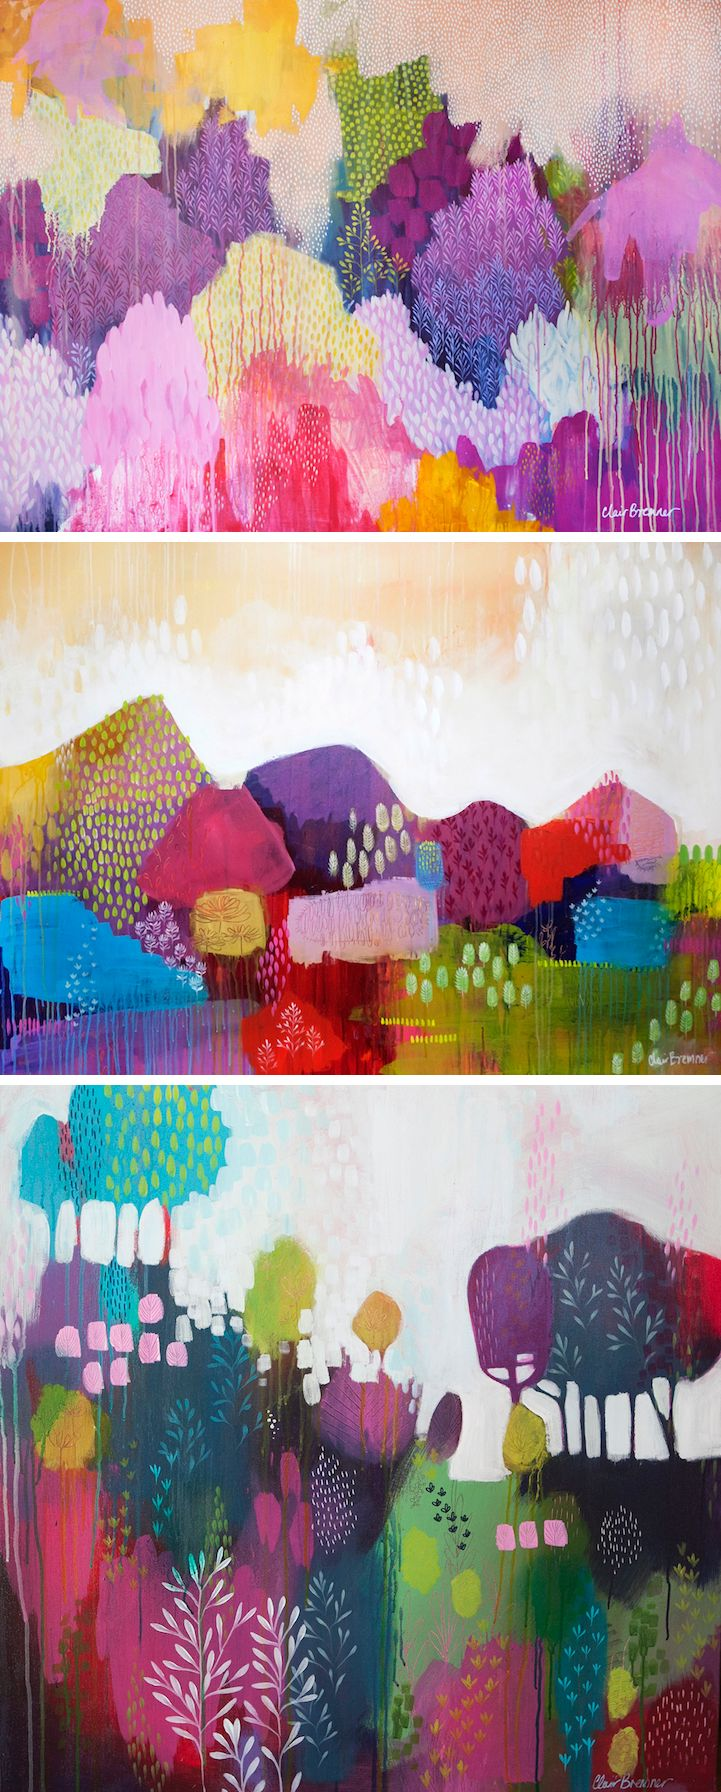 Artist Clair Bremner experiments with color combinations that are not traditionally associated with nature and landscapes.